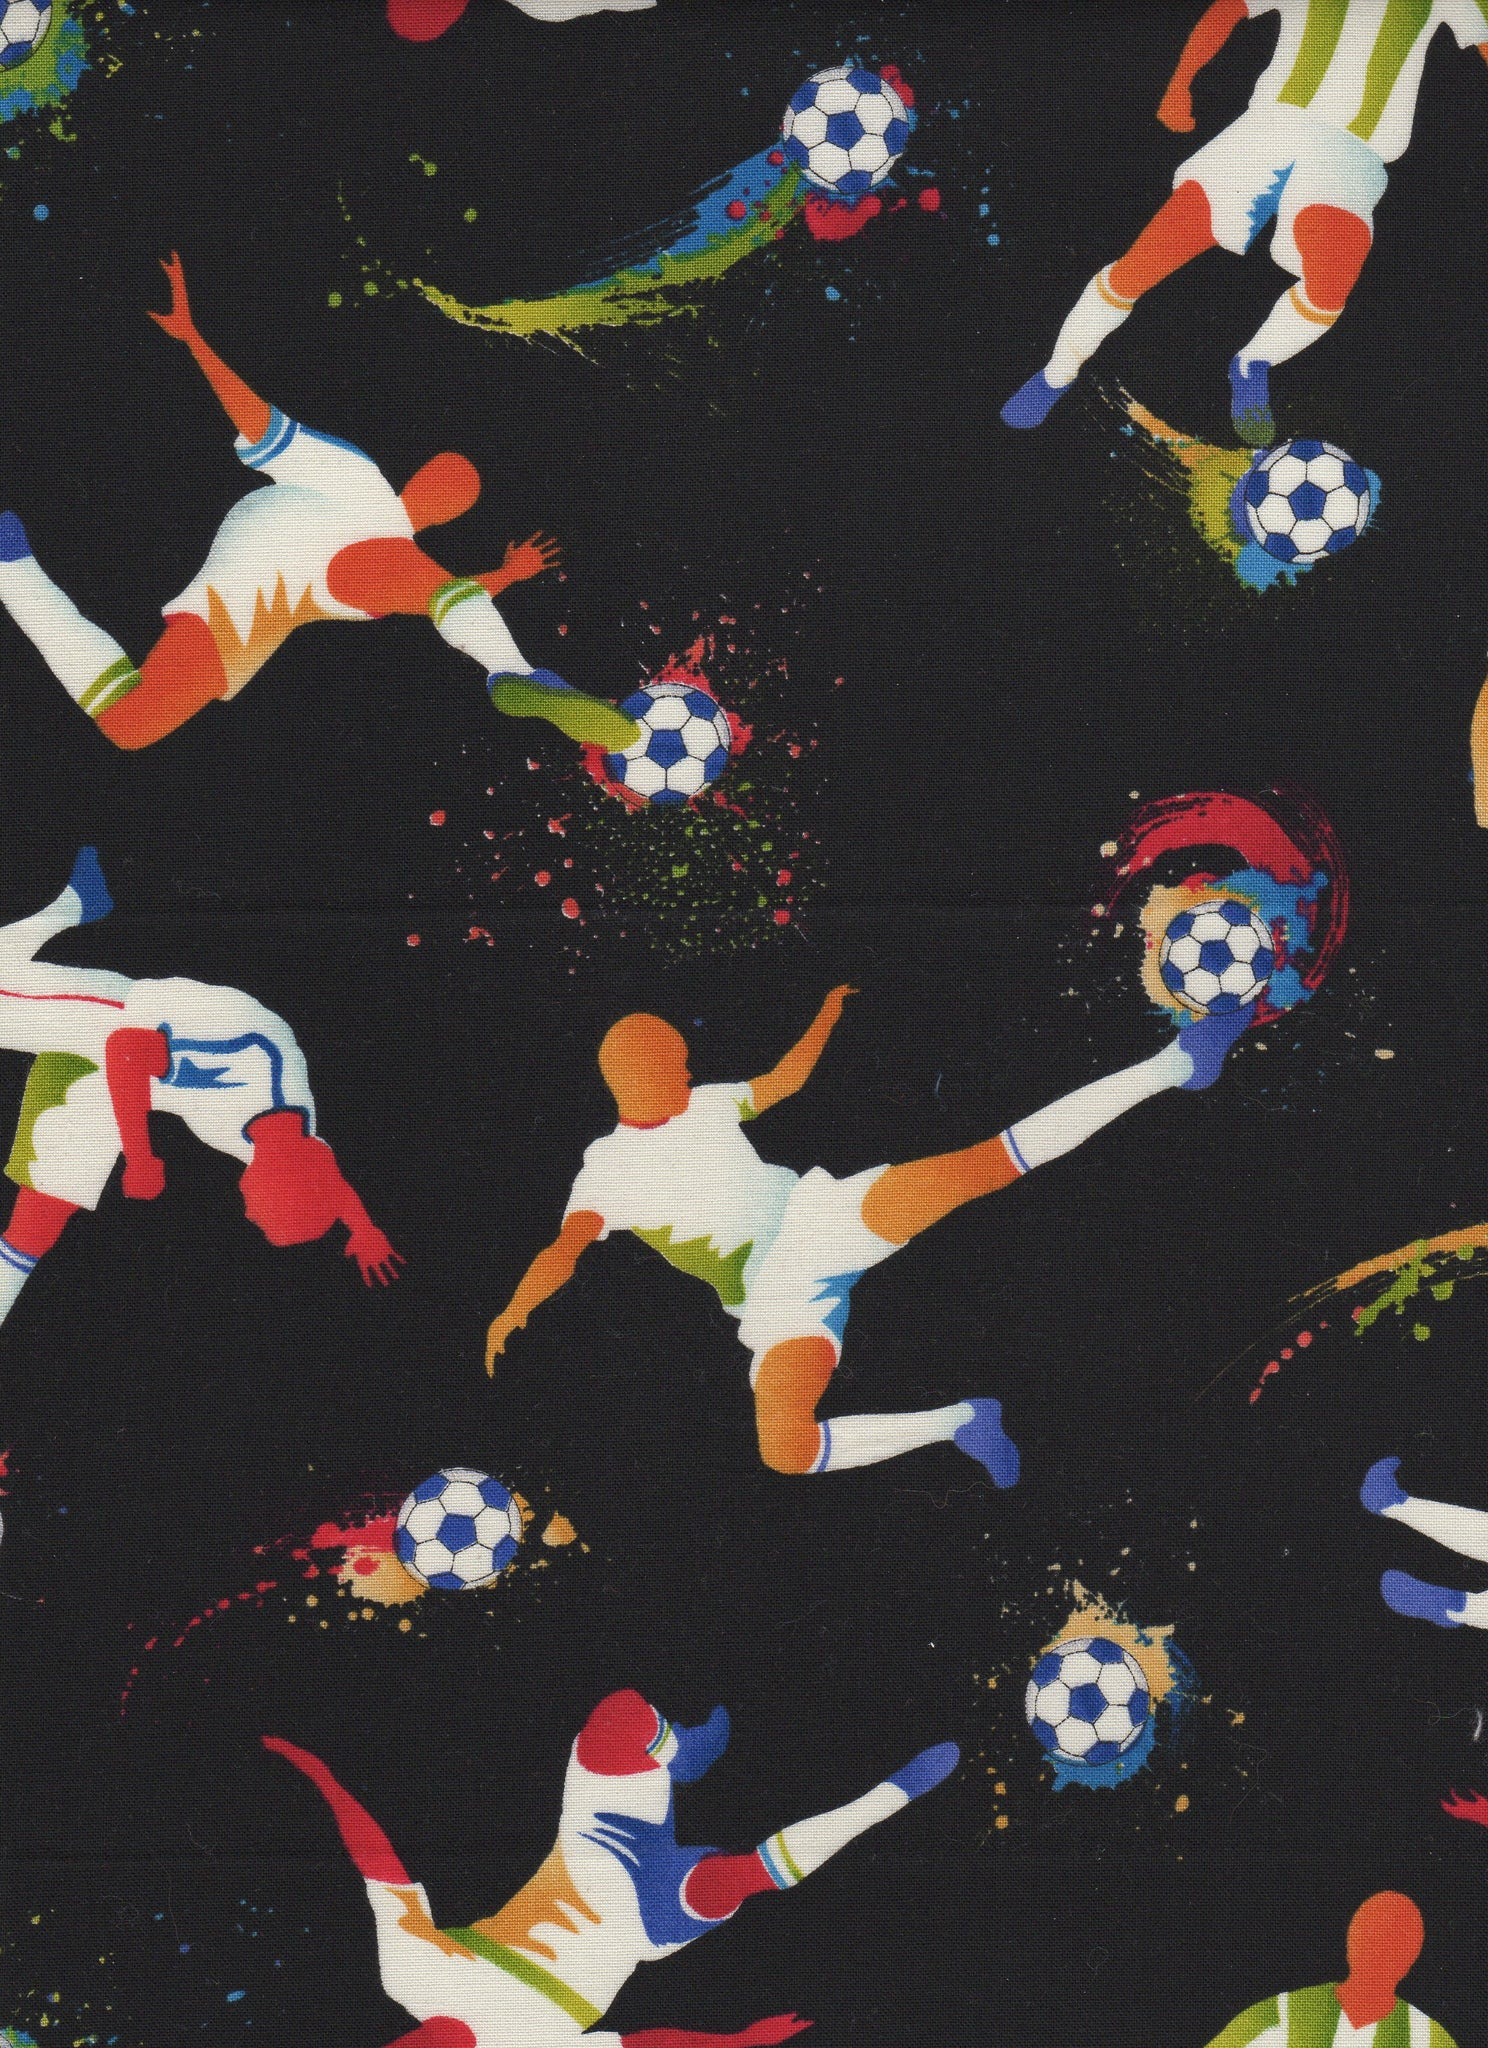 Soccer Players on Black Background - Fat Quarter